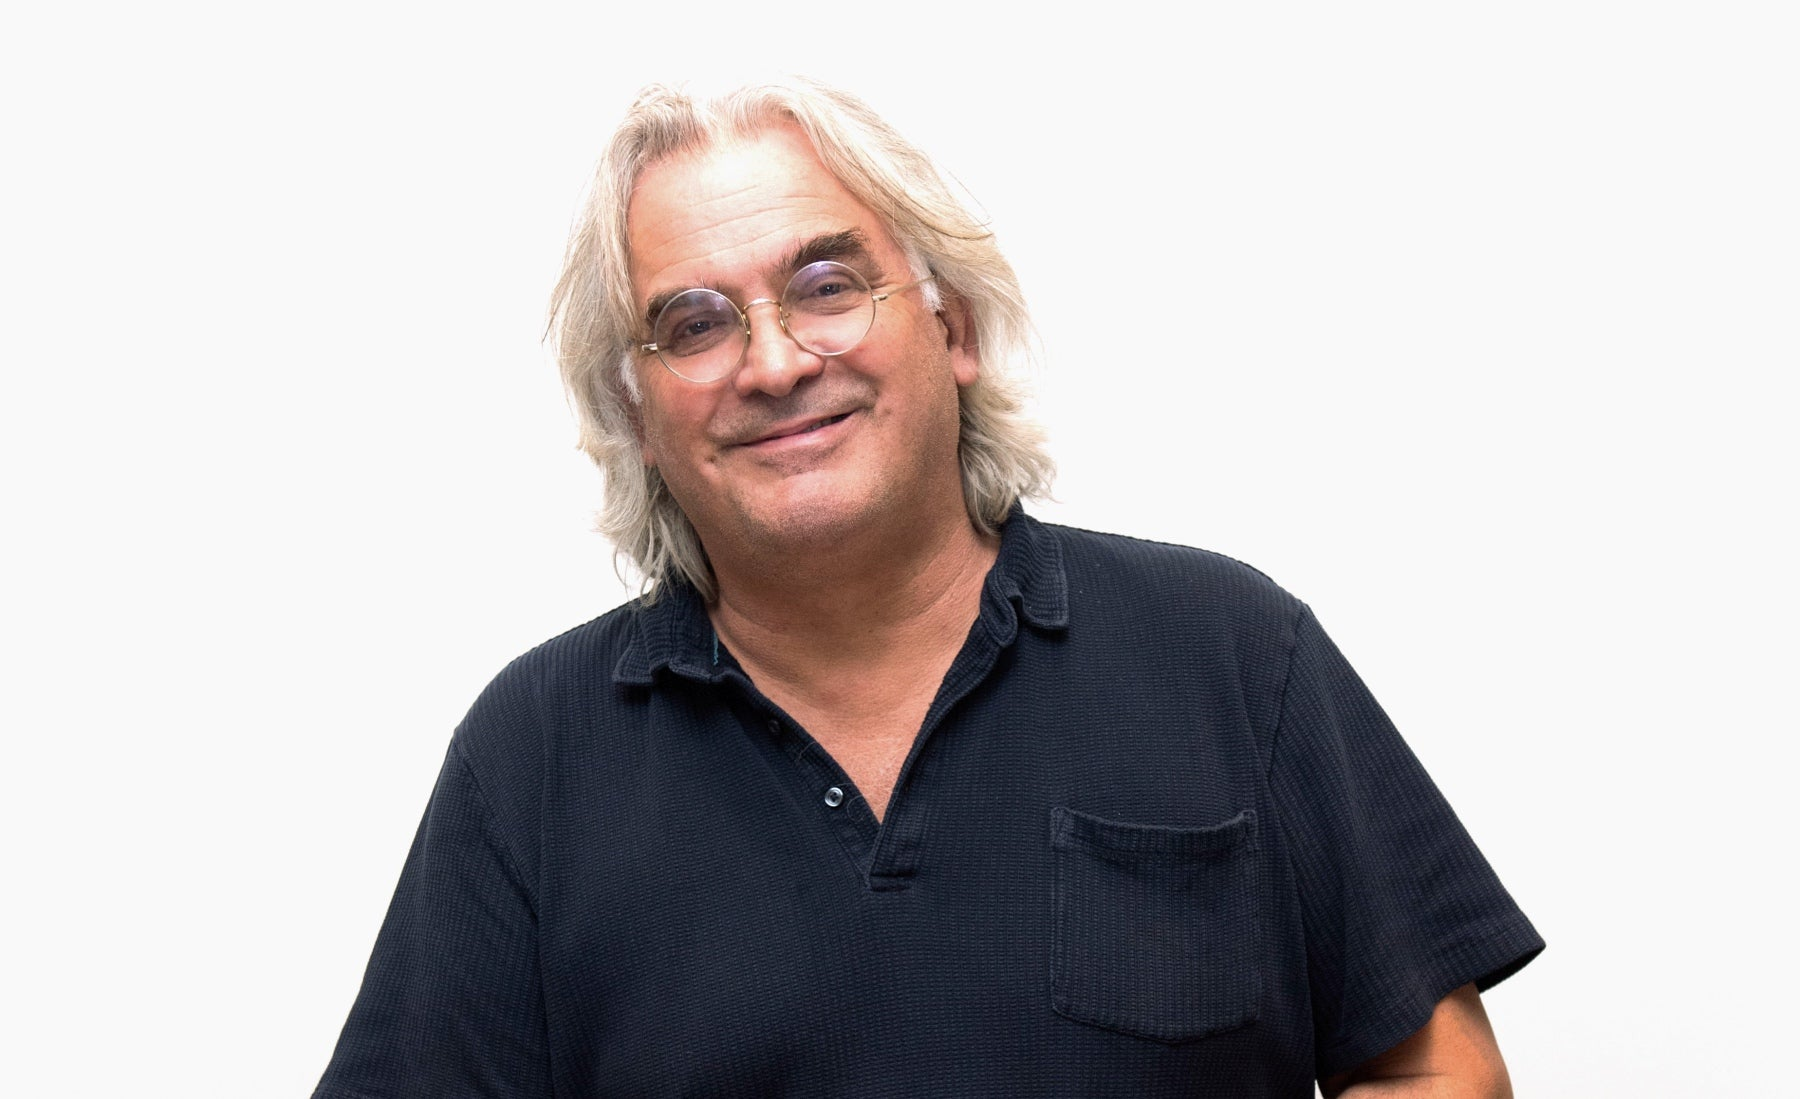 Filmmaker Paul Greengrass, Golden Globe nominee